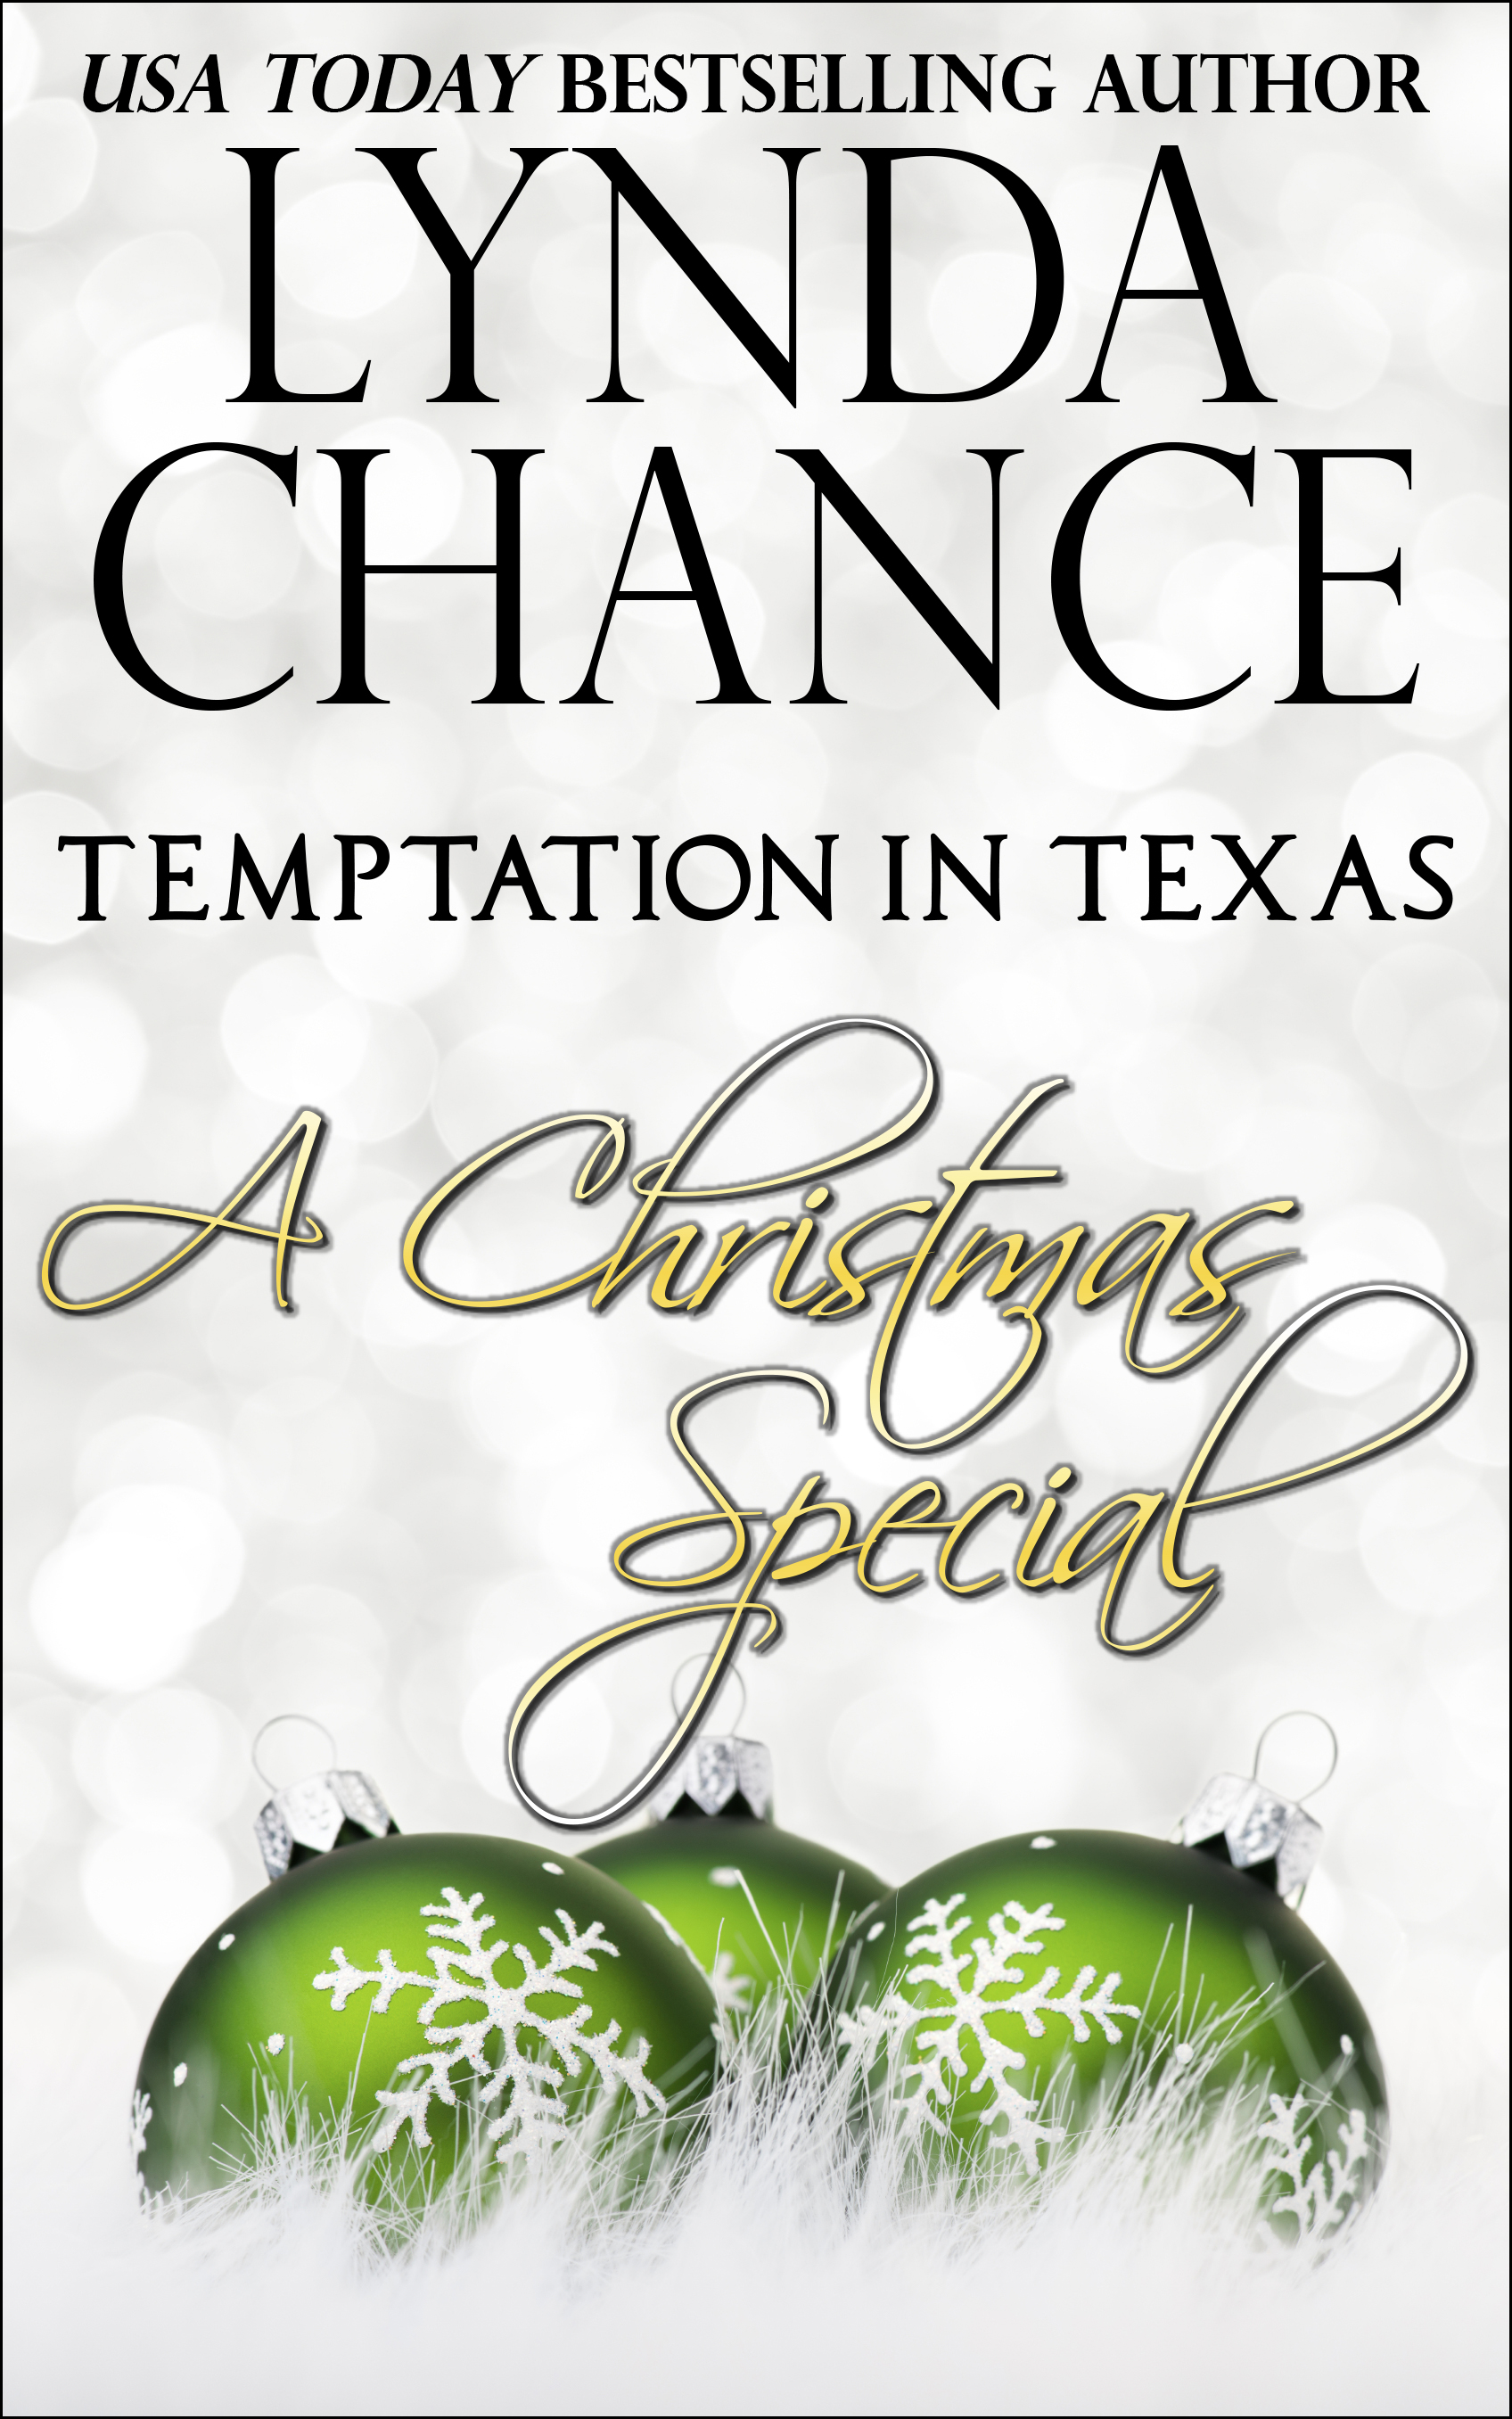 Temptation In Texas: A Christmas Special By Lynda Chance